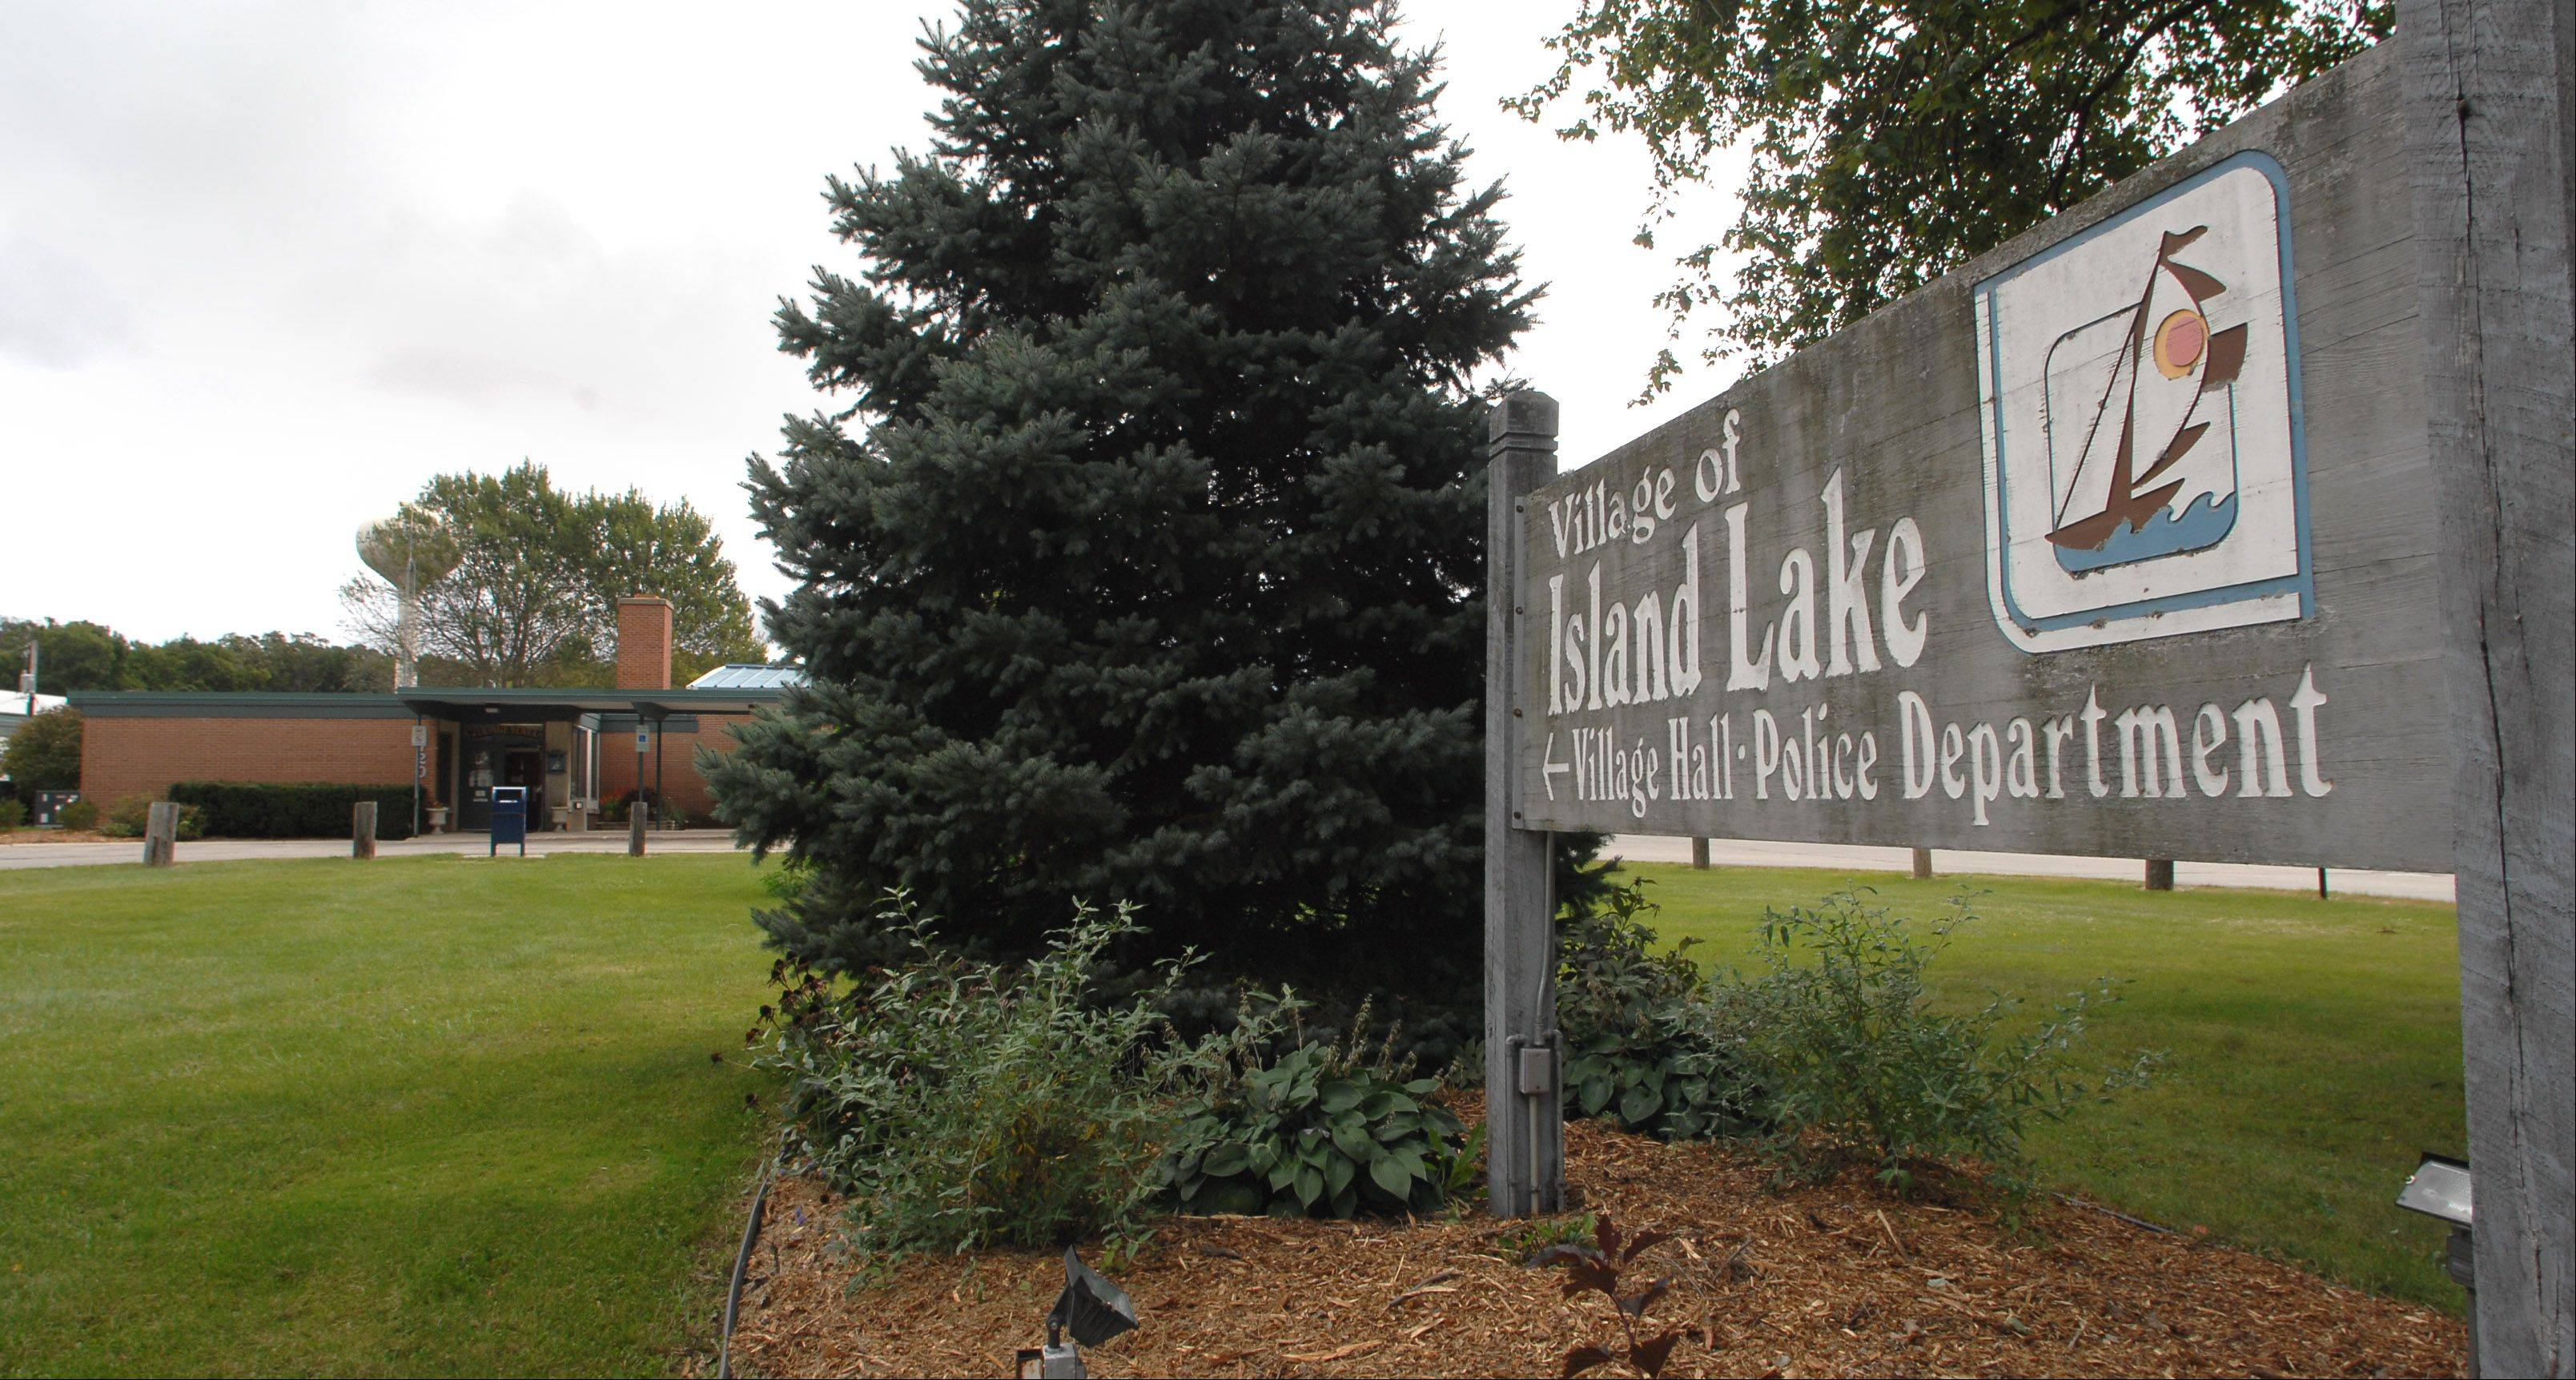 Island Lake voters rejected a plan to build a new municipal building Tuesday, but the question was only advisory and is not binding.